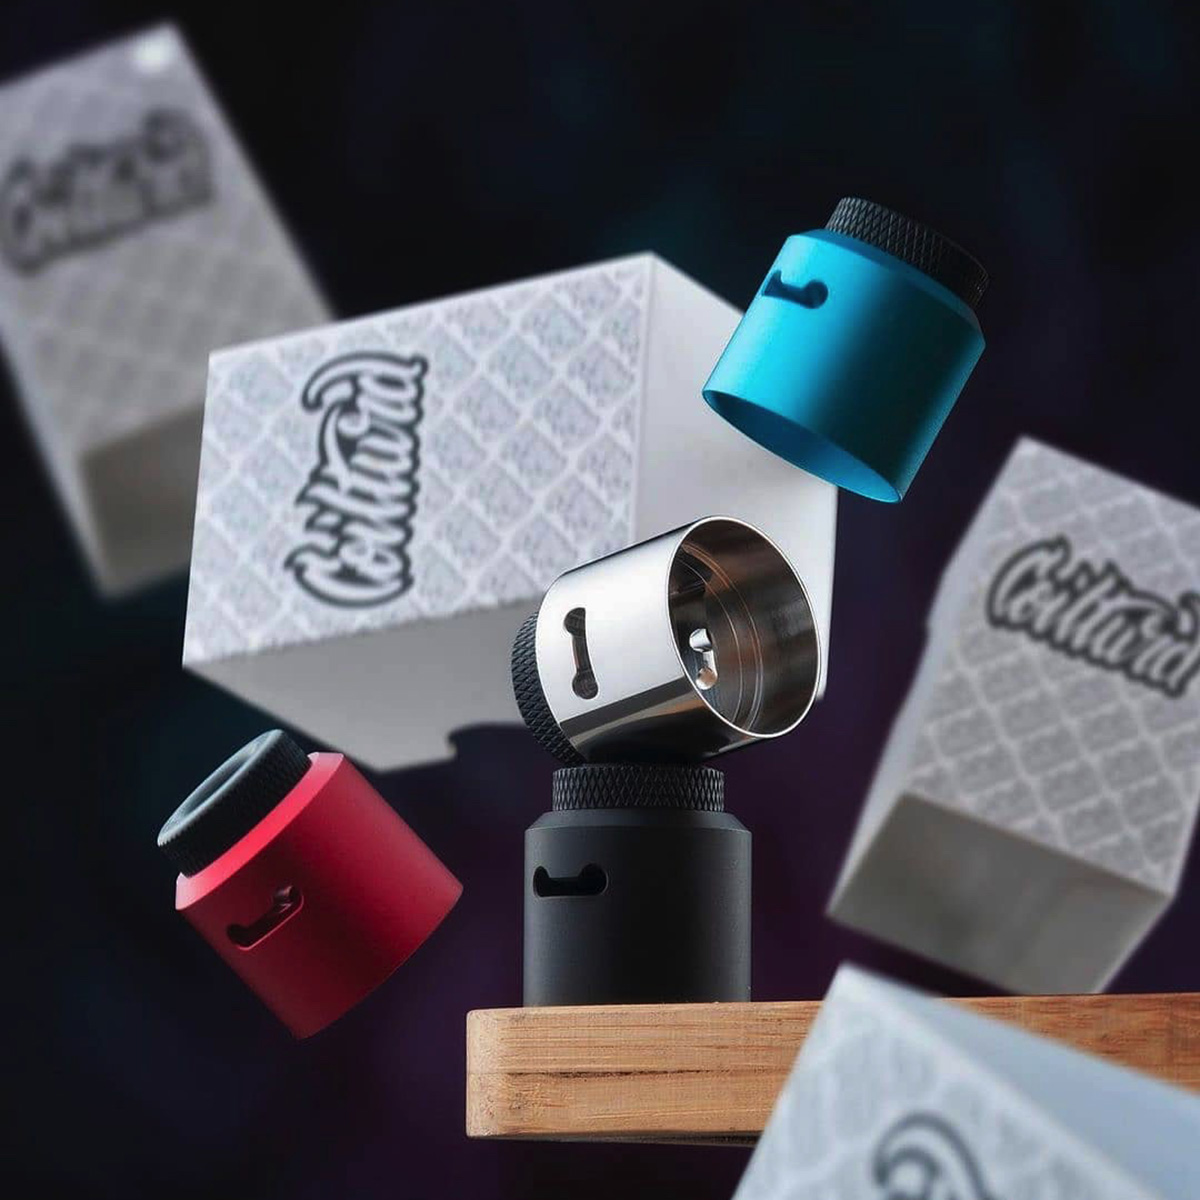 CLOUD CAP SET FOR AN RDA FOR VAPING  BY COILTURD